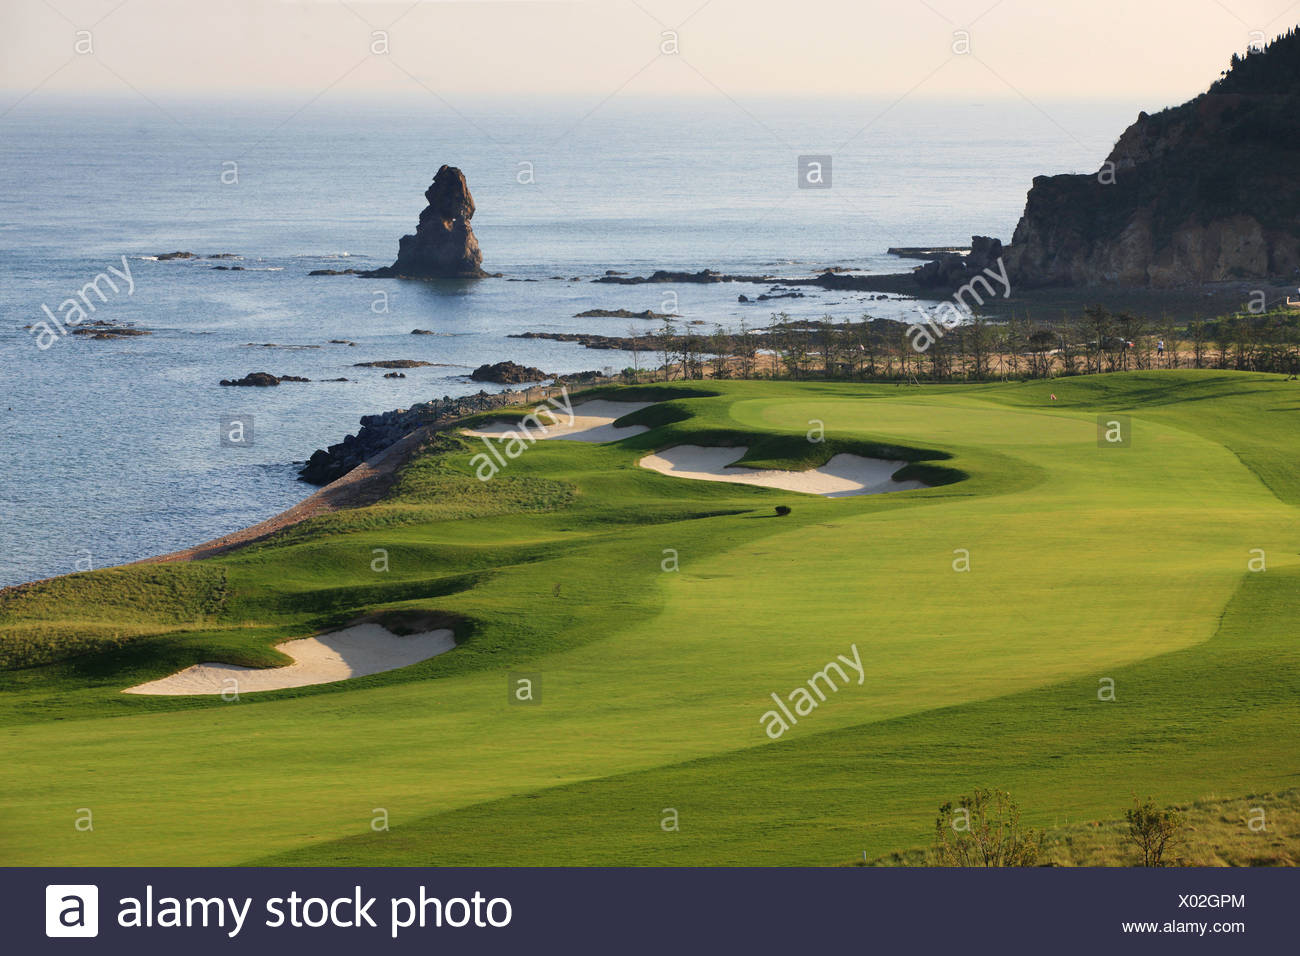 Golf course by sea - Stock Image